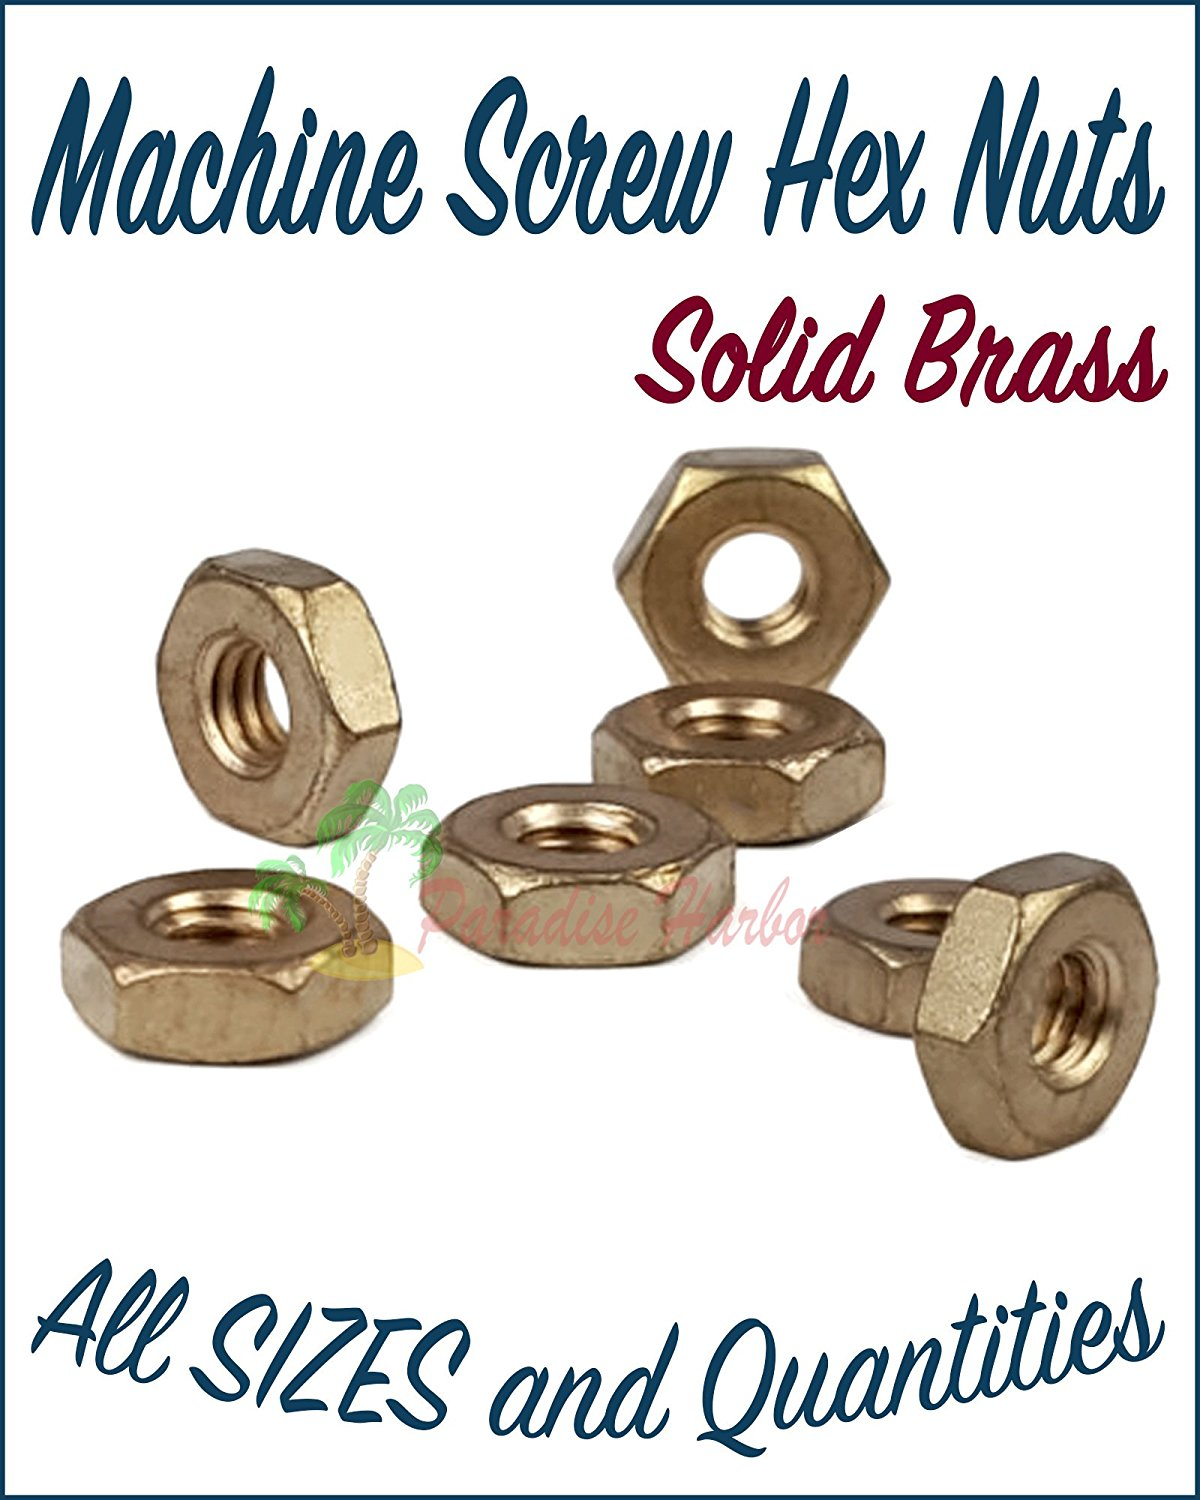 10-24 Wing Nuts Solid Brass Quantity 250